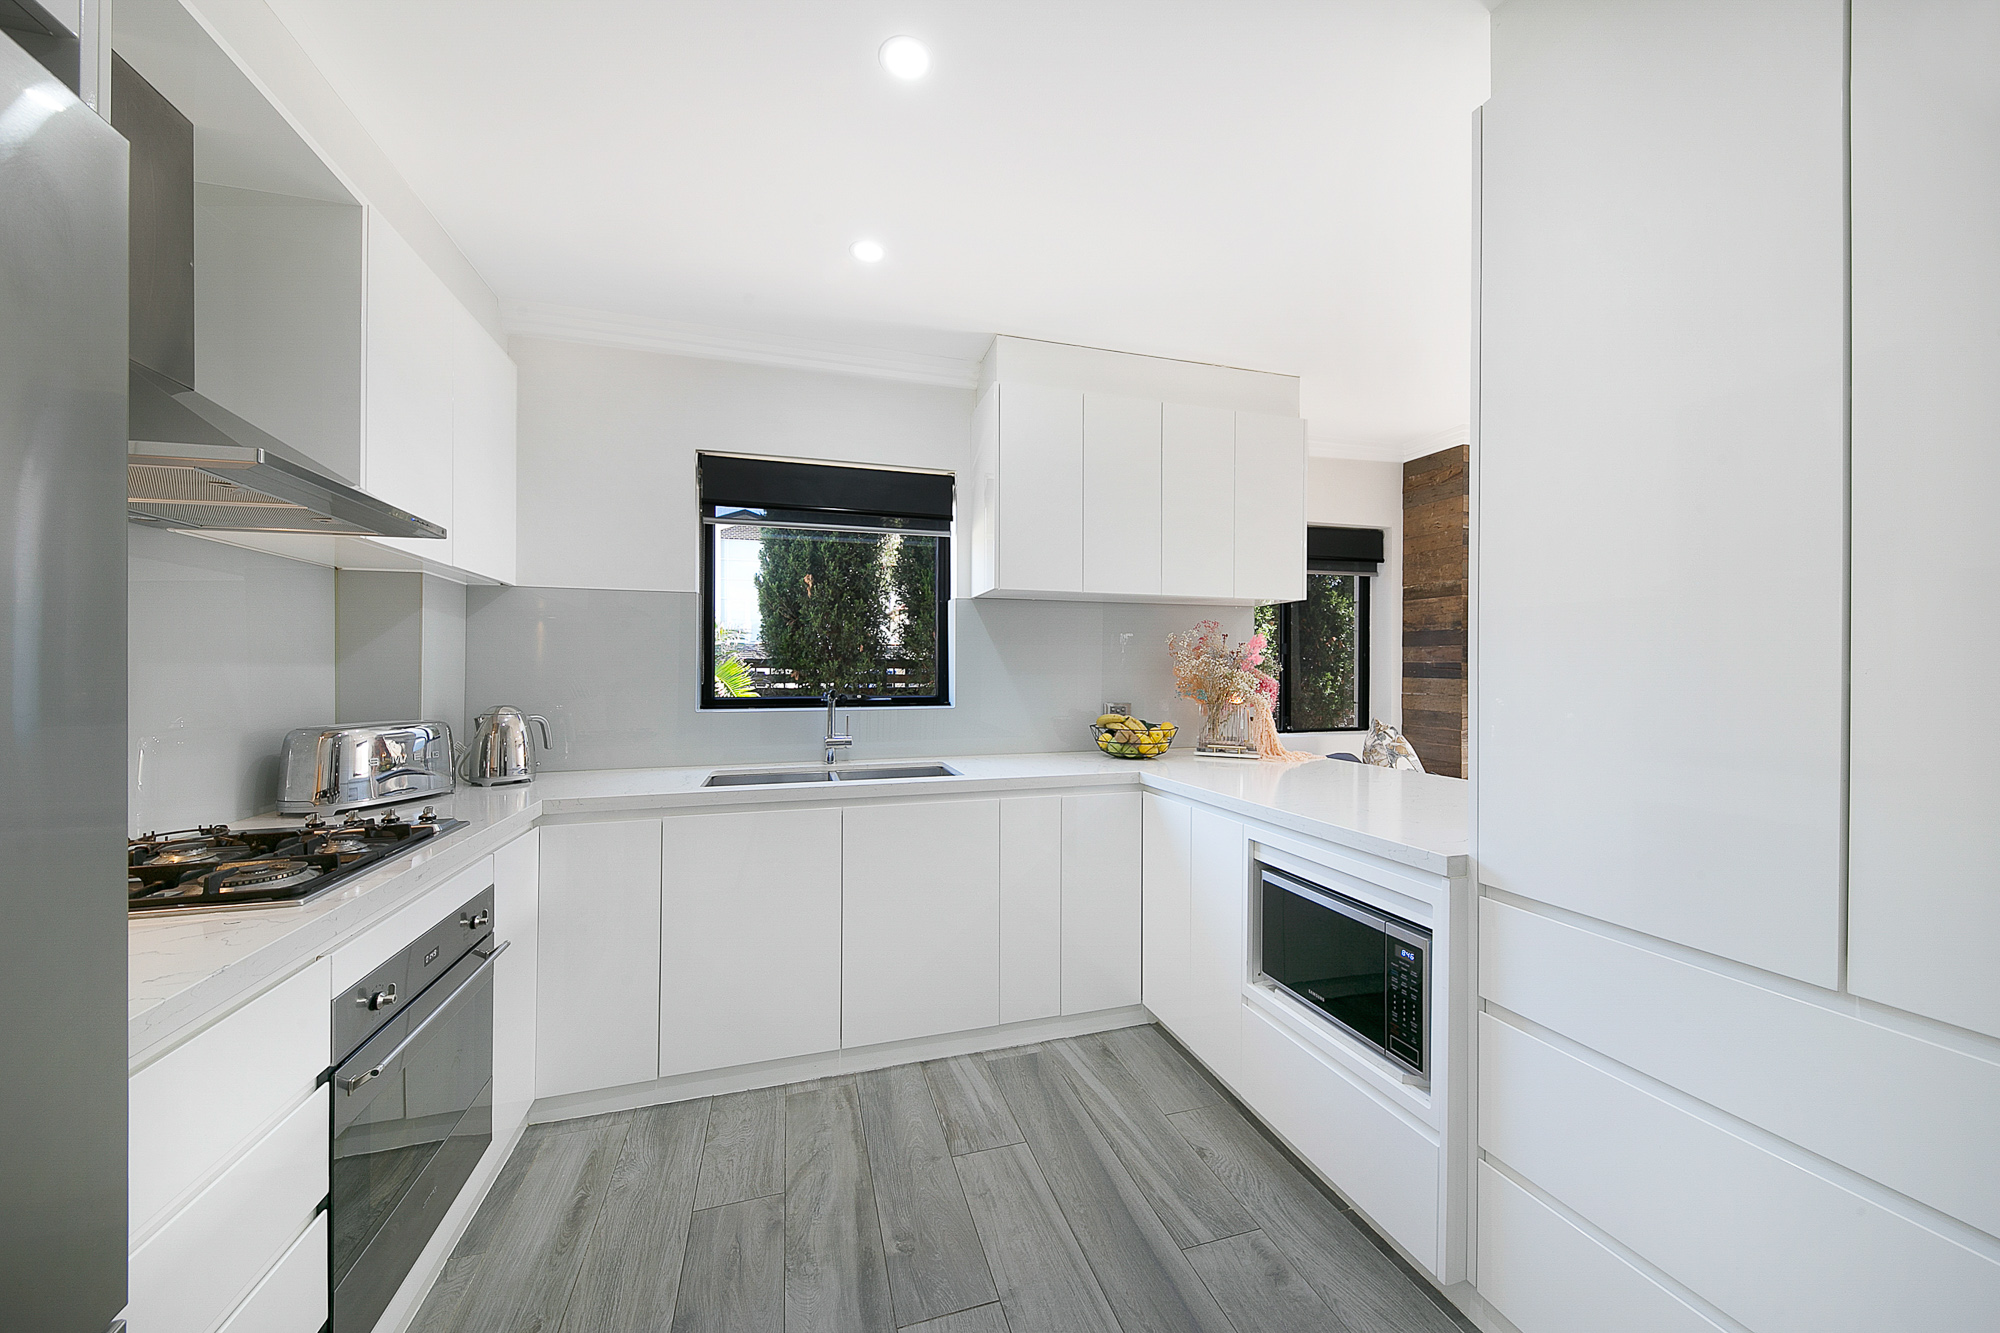 3 Rooms, House, Leased, Hinchen Street, 2 Bathrooms, Listing ID 1461, Guildford , NSW, Australia, 2161,